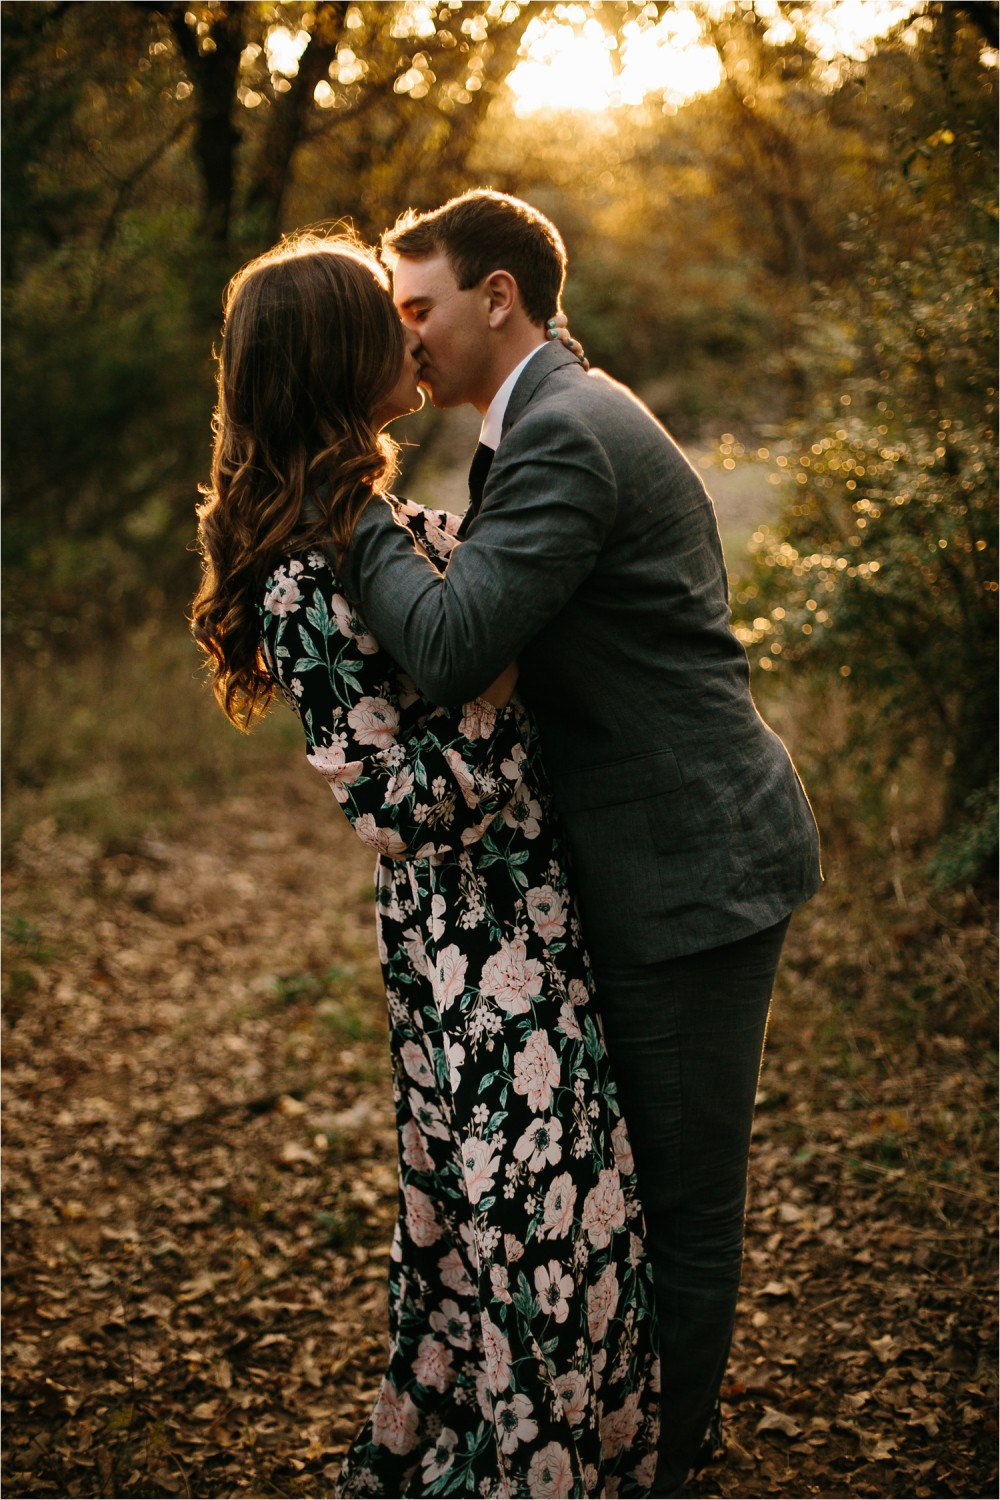 Aleta + Sabian __ a windy lakeside nature engagement session by North Texas Wedding Photographer Rachel Meagan Photography _29